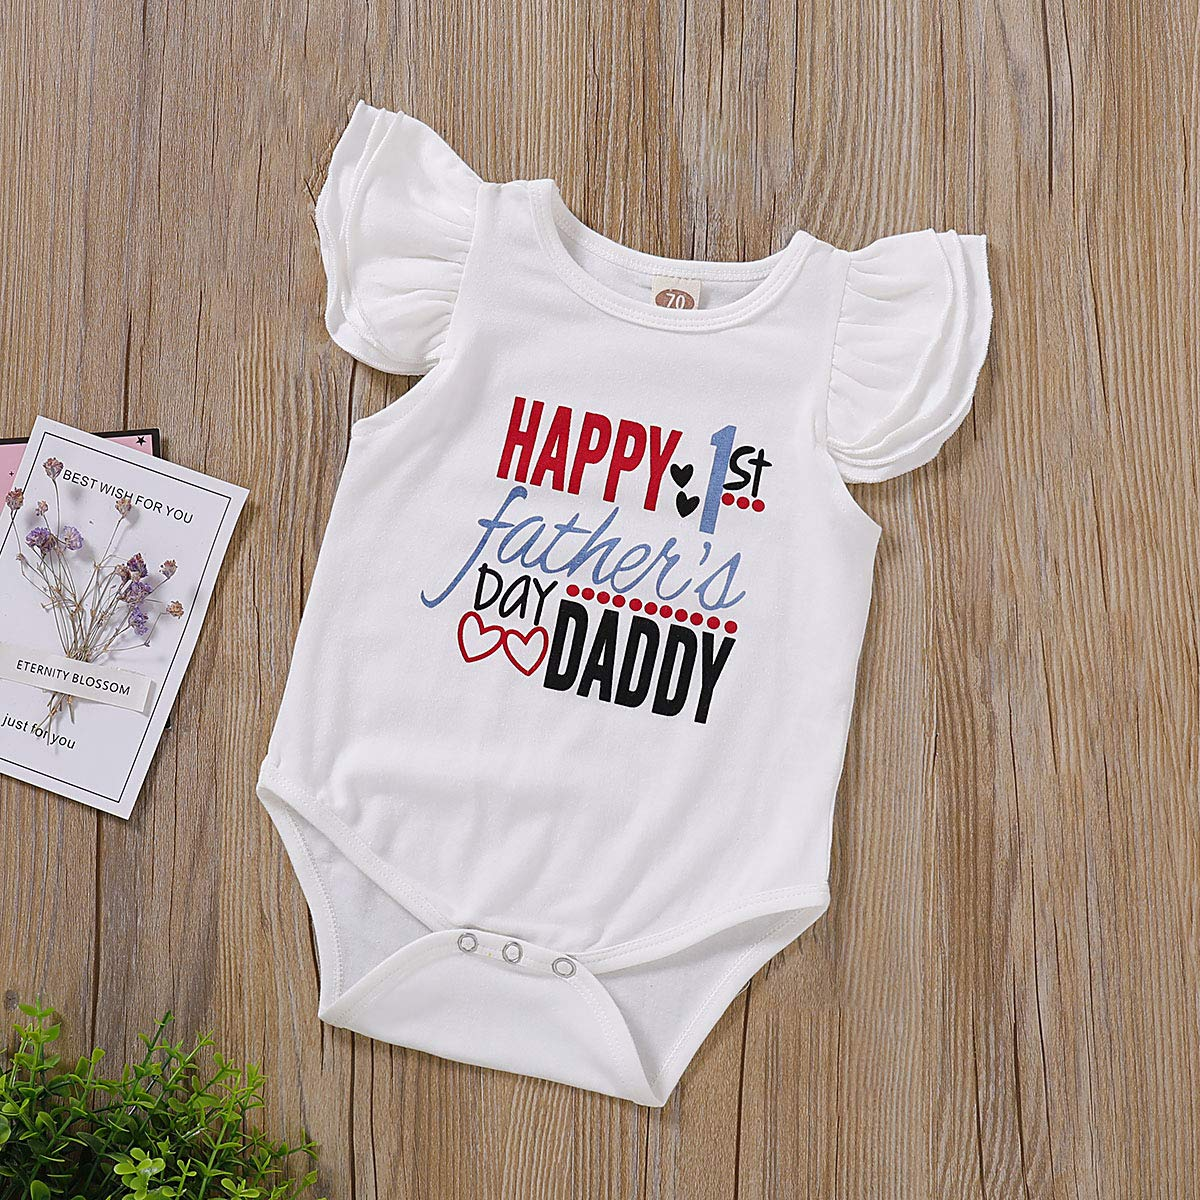 Xiao Reddou Infant Summer Romper Baby Girls Happy 1st Fathers Day Fly Sleeve Bodysuit